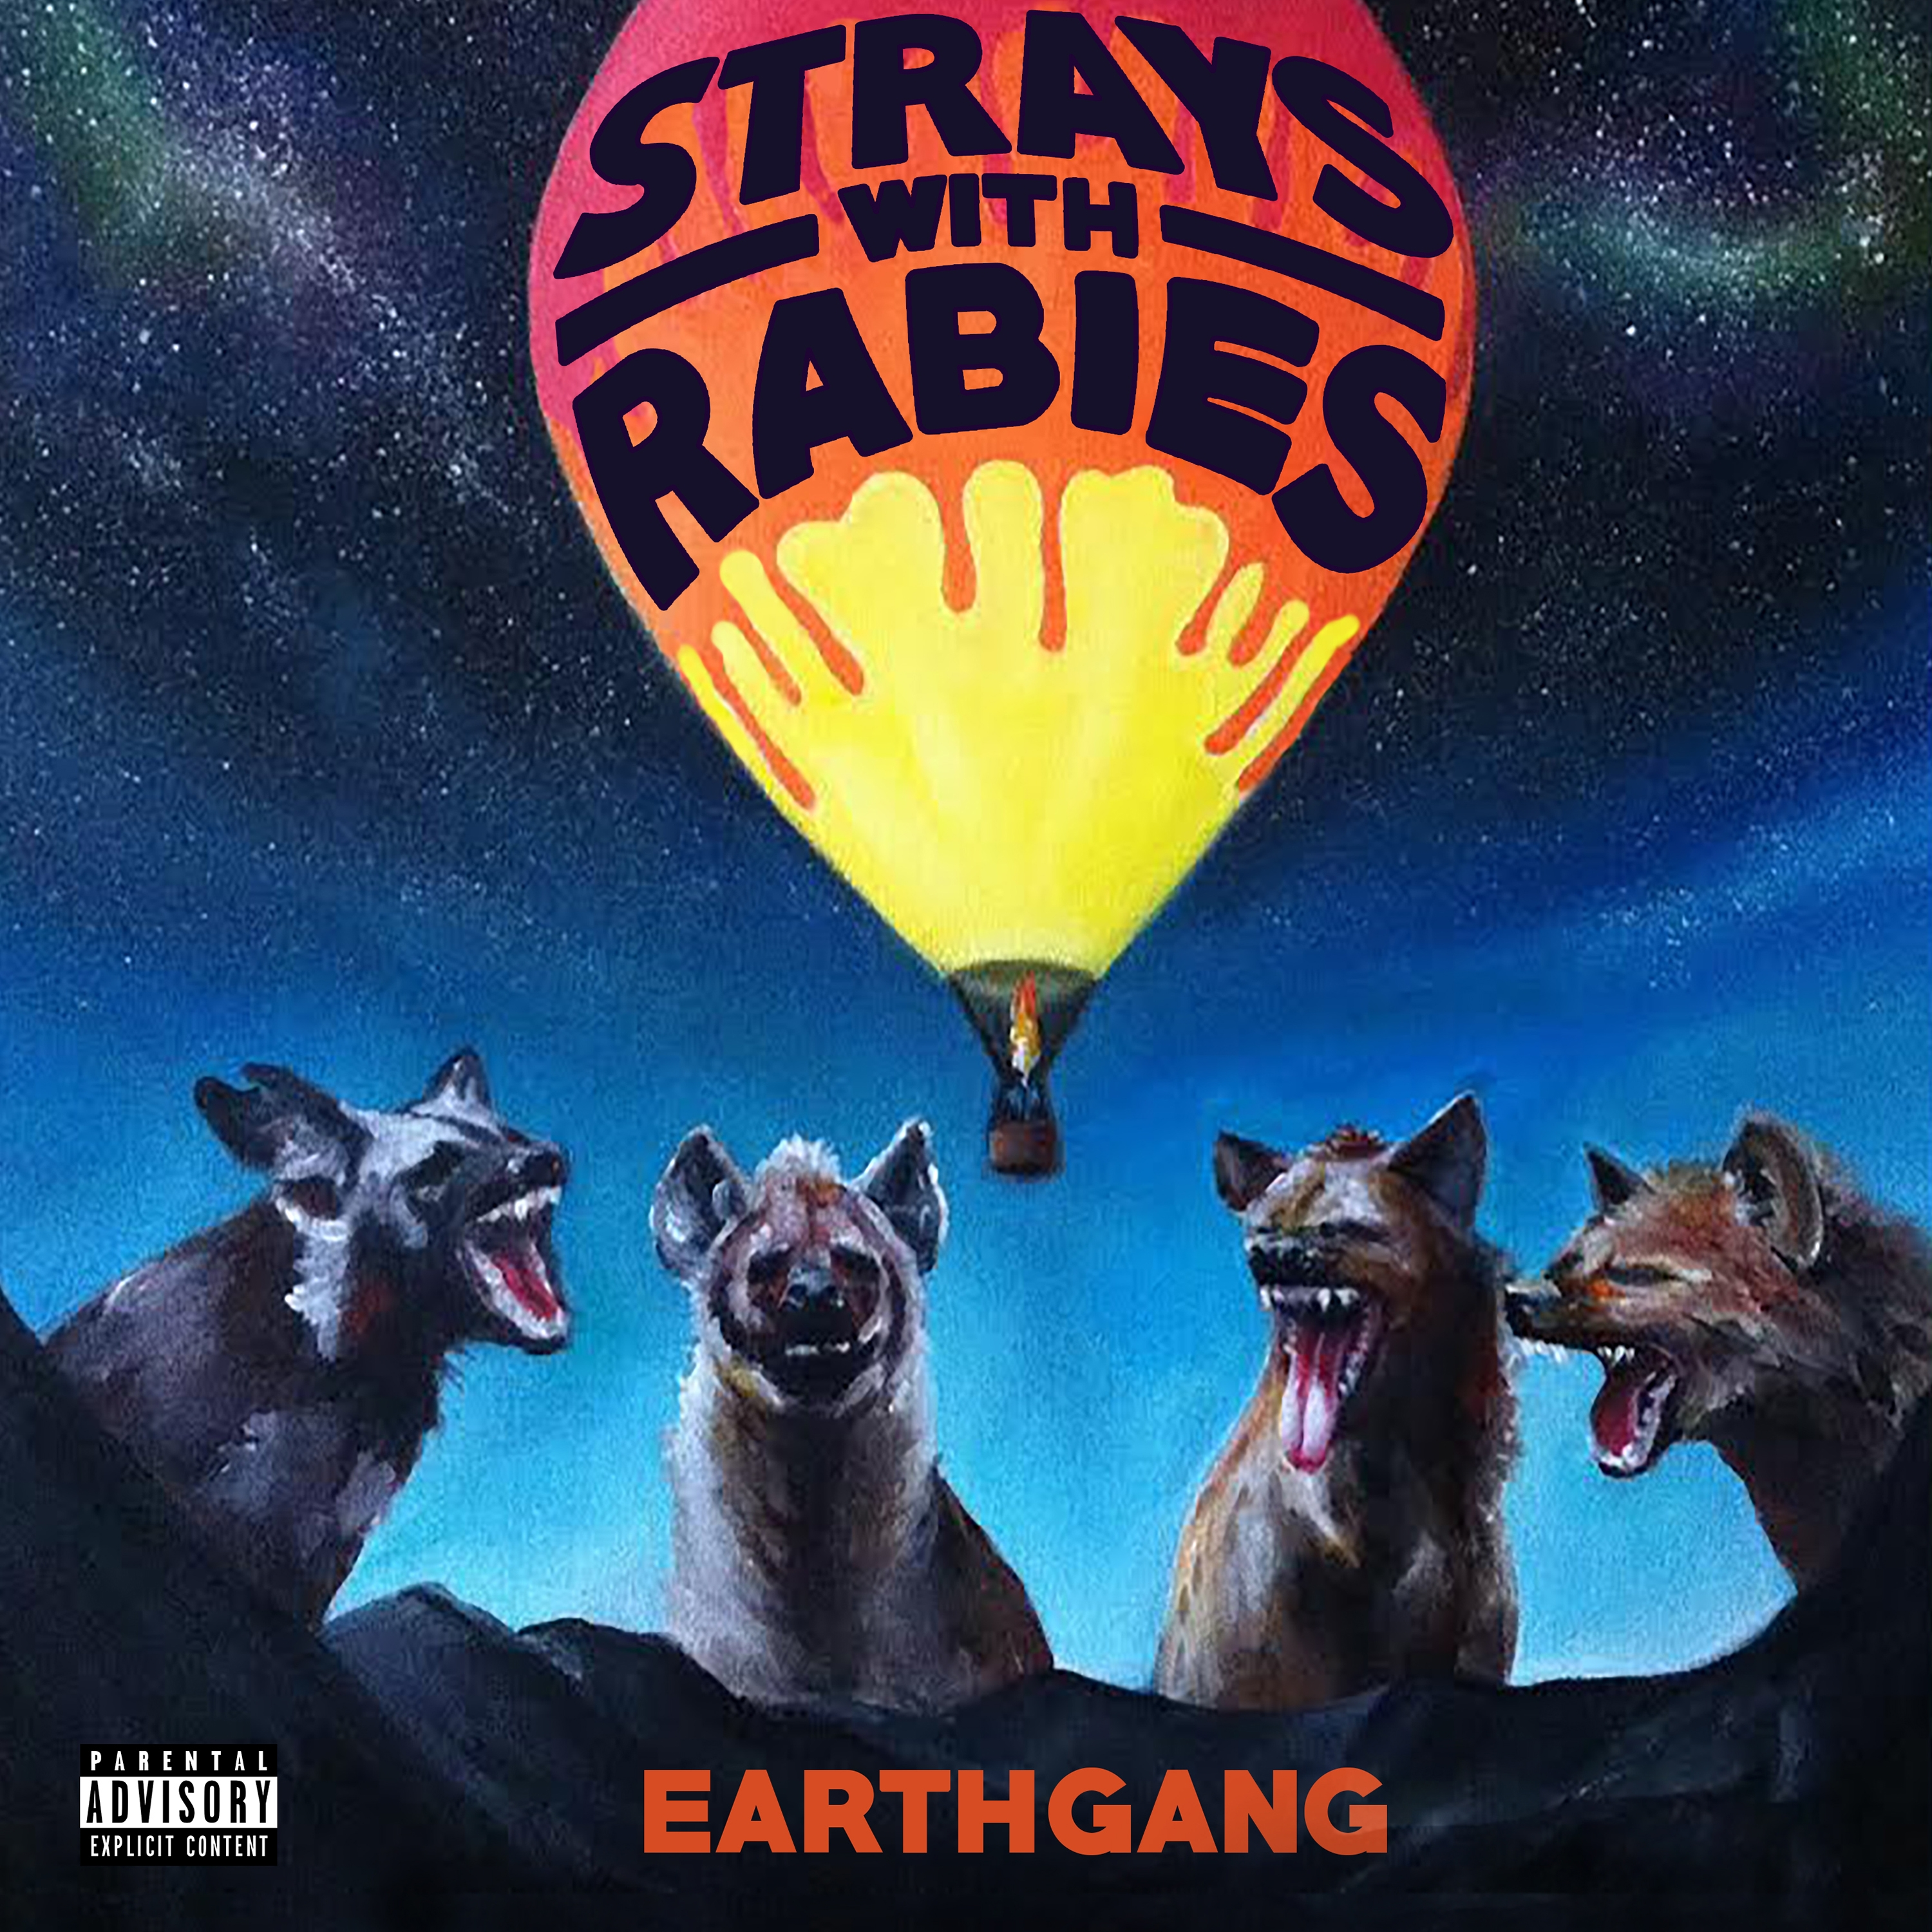 Earthgang - Strays With Rabies (Rsd) [Colored Vinyl] [Record Store Day] [RSD Drops 2021]